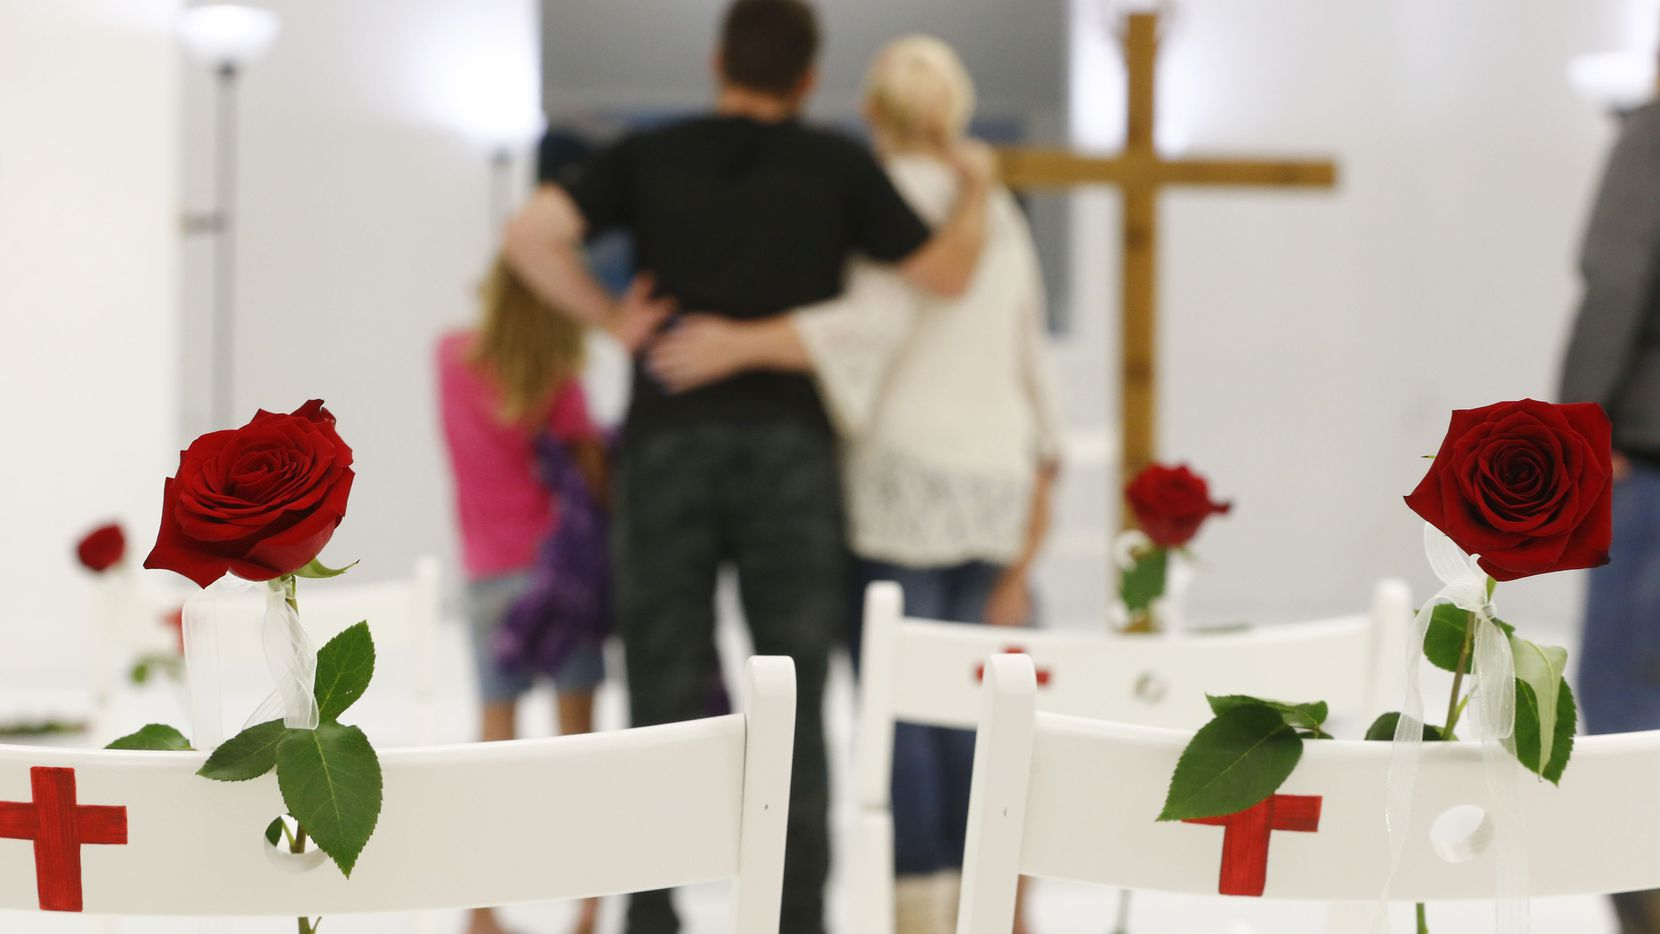 Roses are left on the chairs representing the victims as visitors are allowed into First Baptist Church to pay their respects a week after the shooting in Sutherland Springs, Texas on Nov. 12, 2017. The church was the site of a shooting that killed 26 and left 30 injured. (Nathan Hunsinger/The Dallas Morning News)